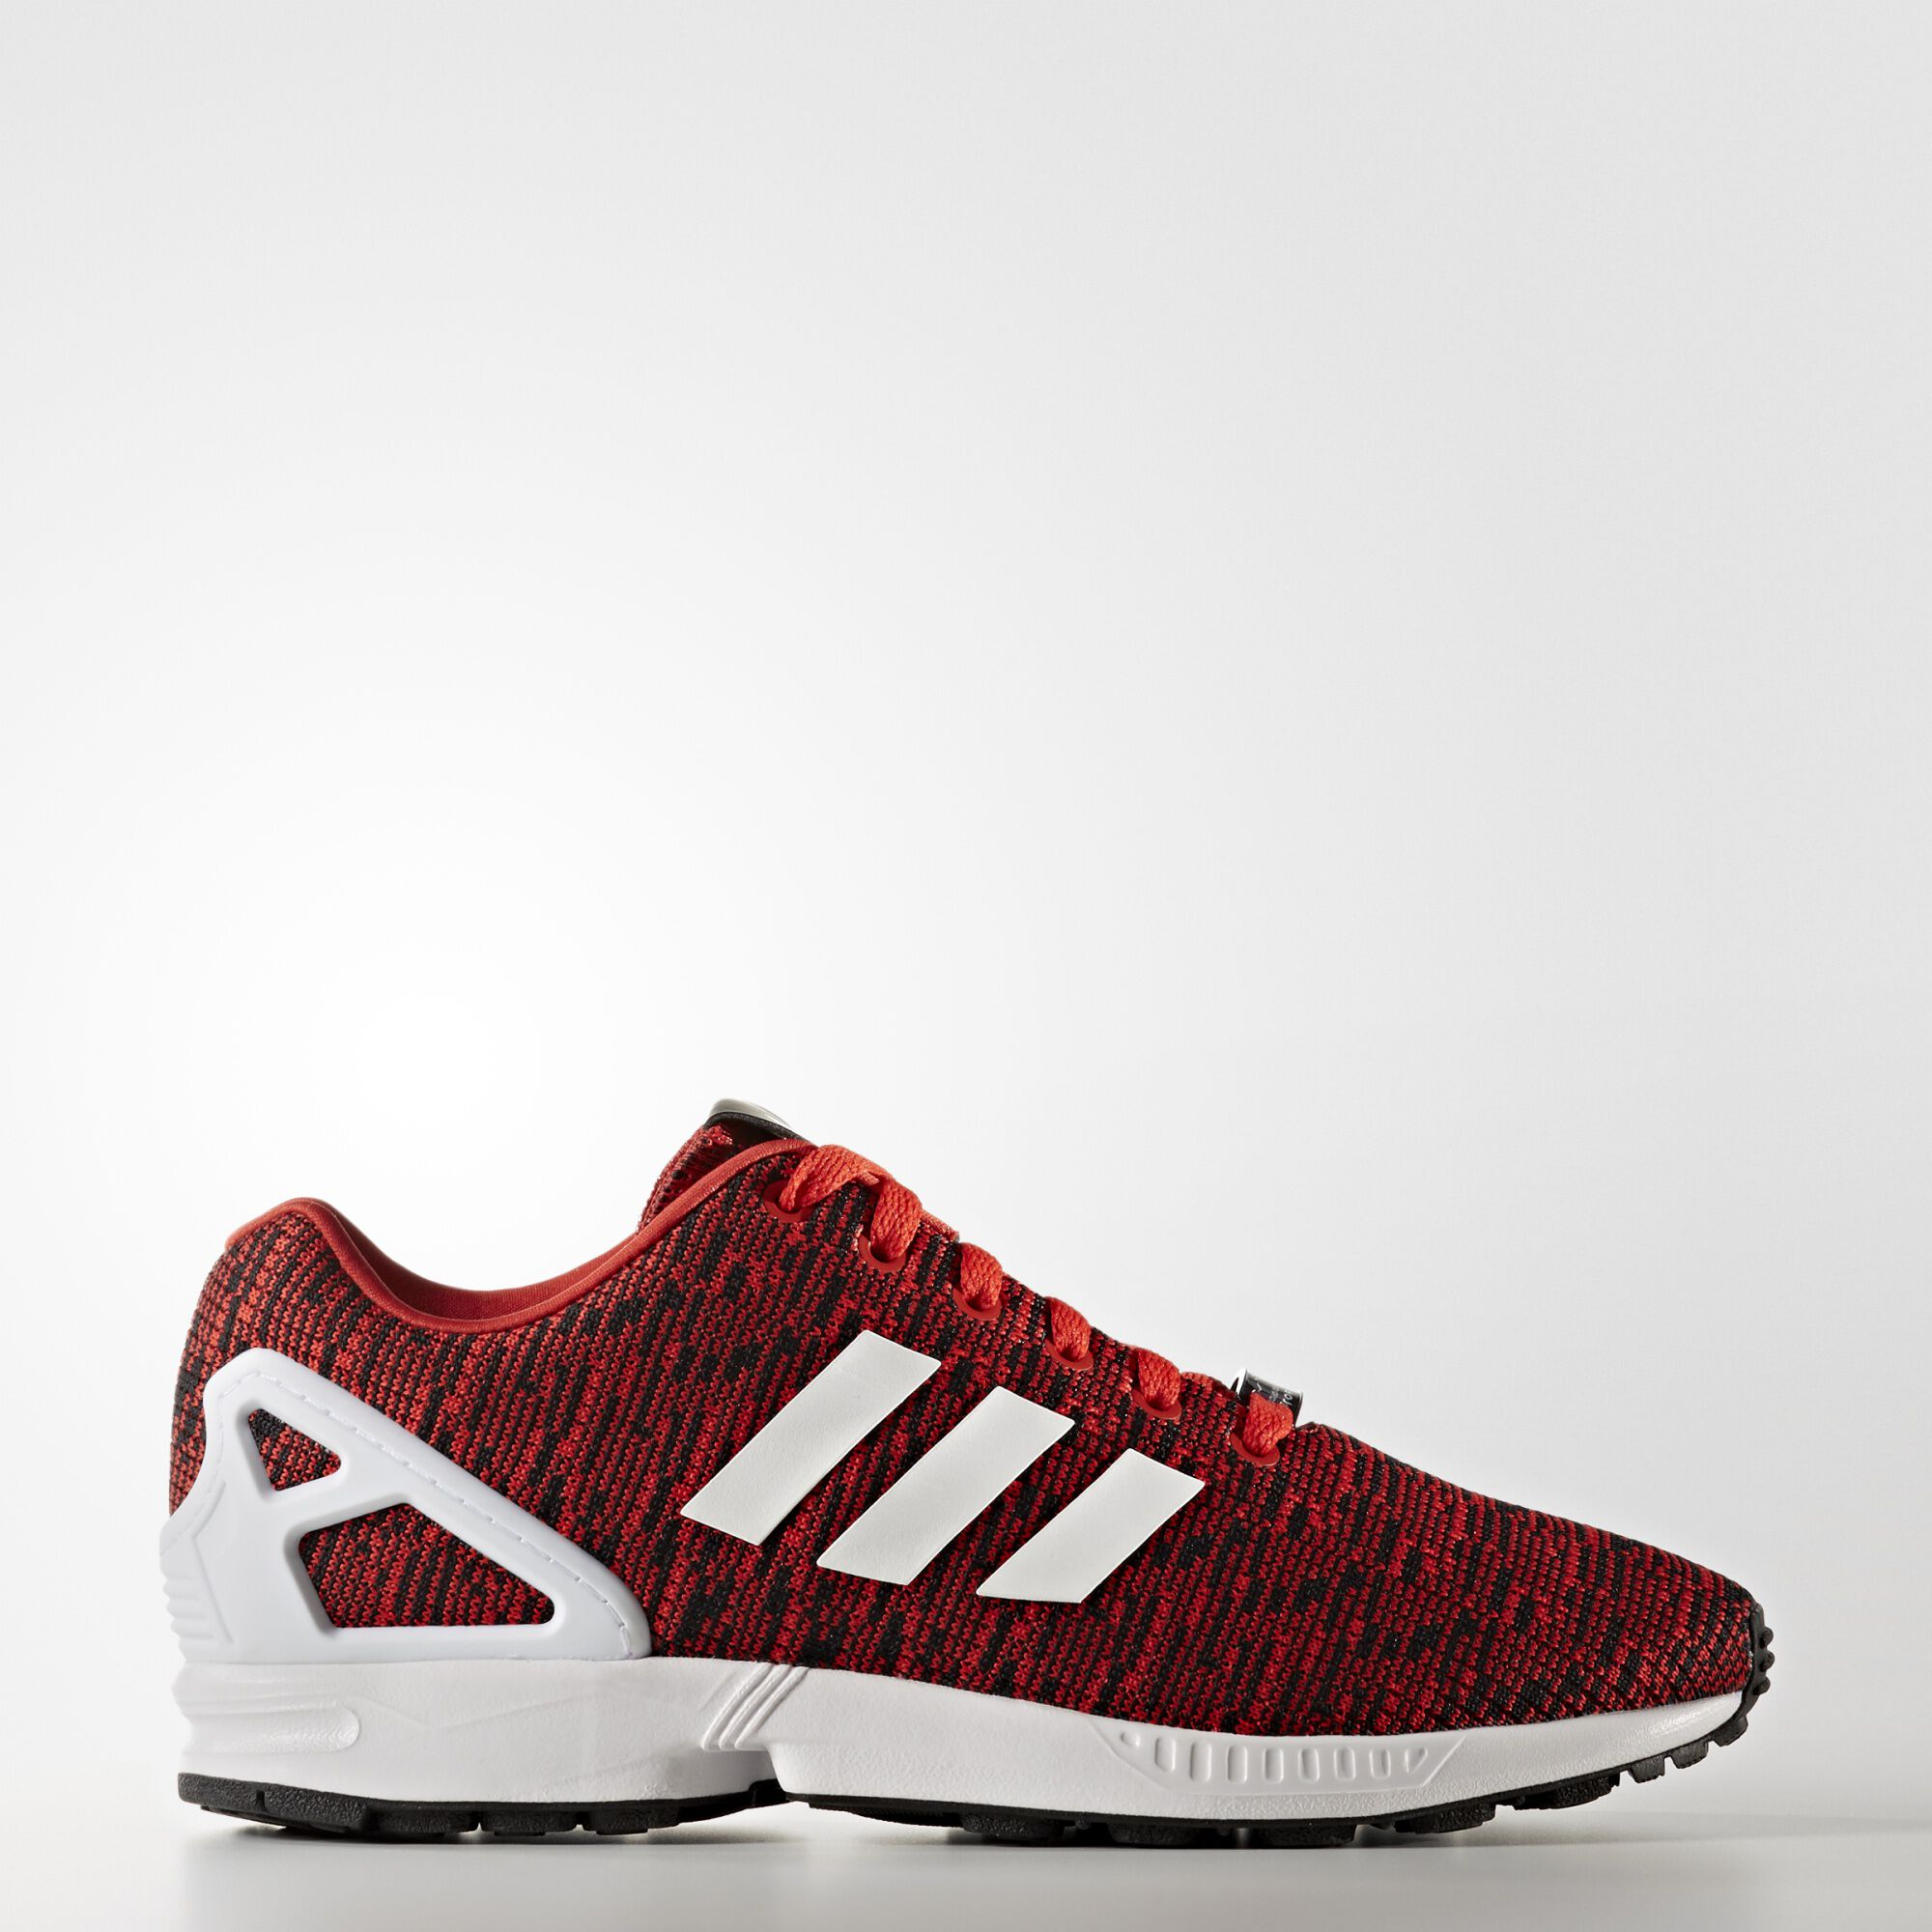 fb9216cec discount code for adidas zx flux red and white 56bbb 42cc1